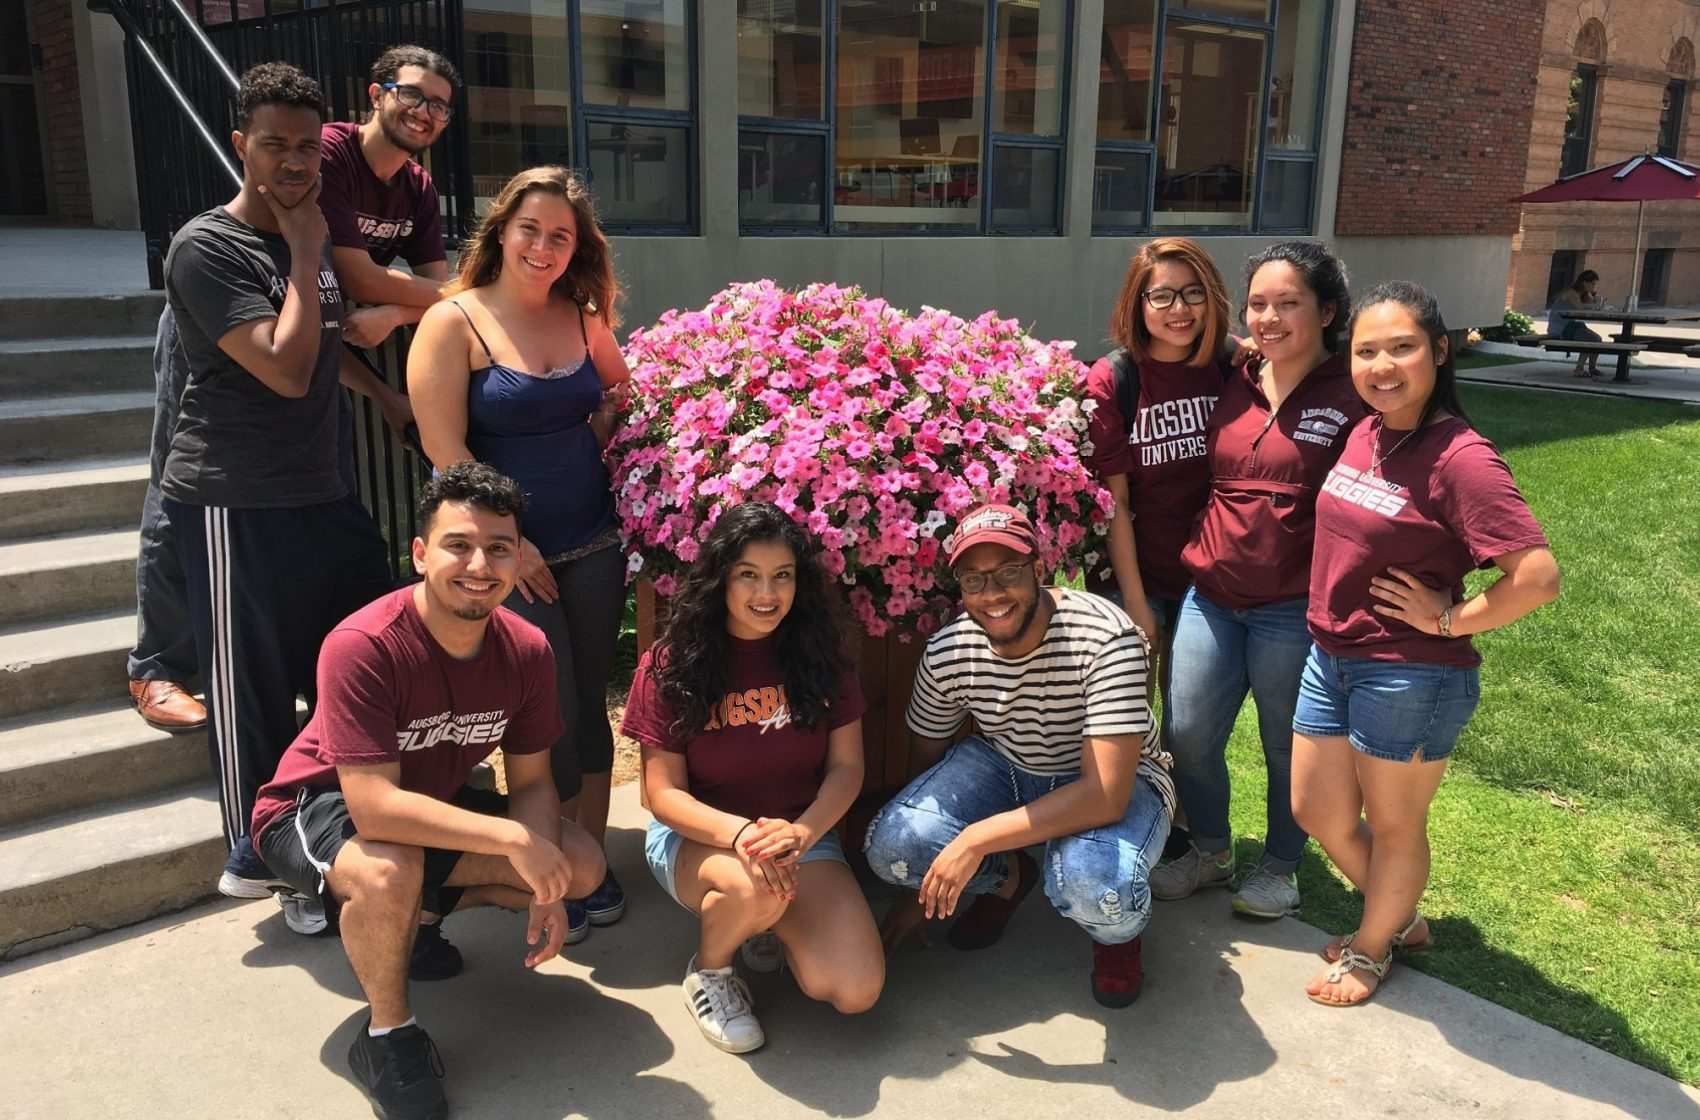 Student leaders who welcomed incoming students through Auggies Engage.